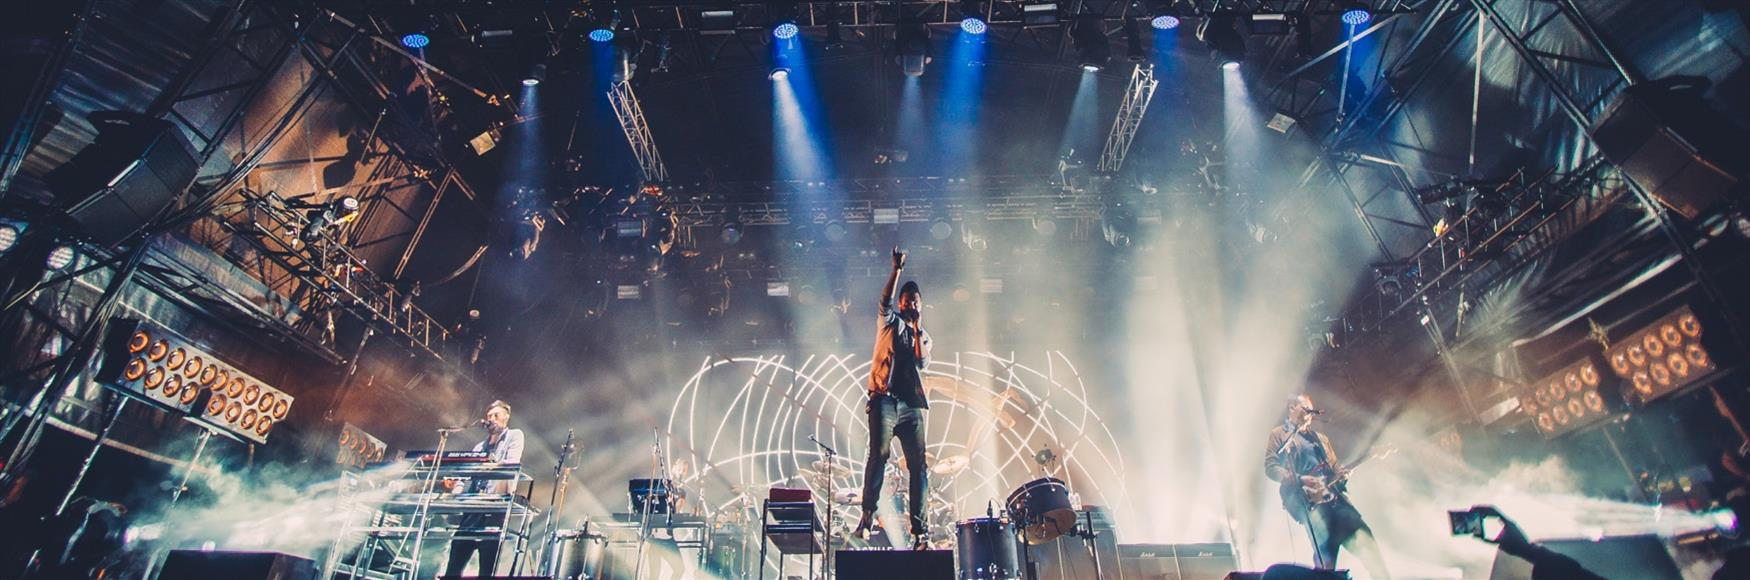 Boardmasters Main Stage